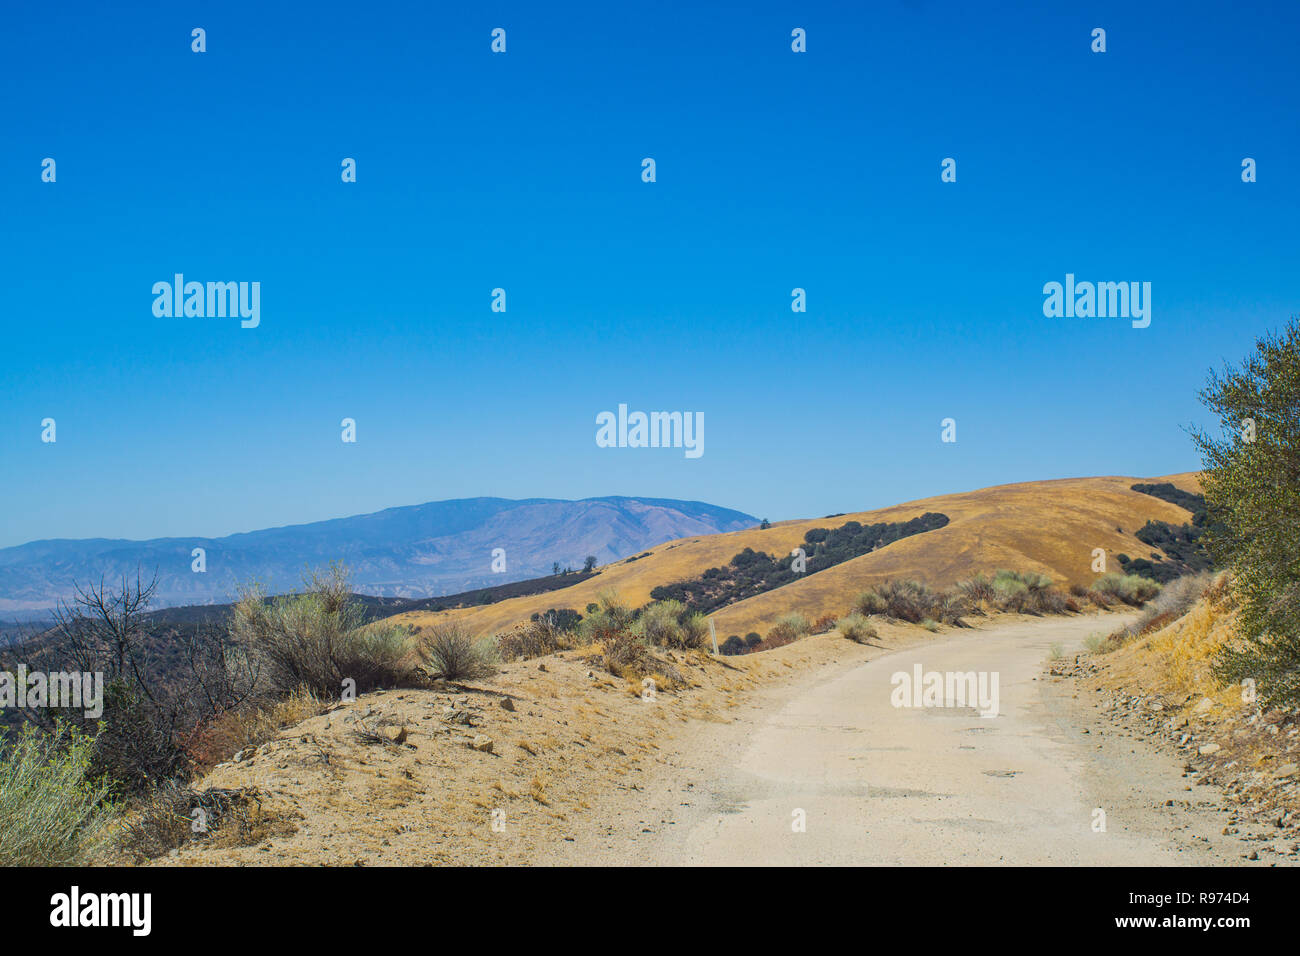 Rough road on the edge of a mountain in the National Forest of southern California. - Stock Image